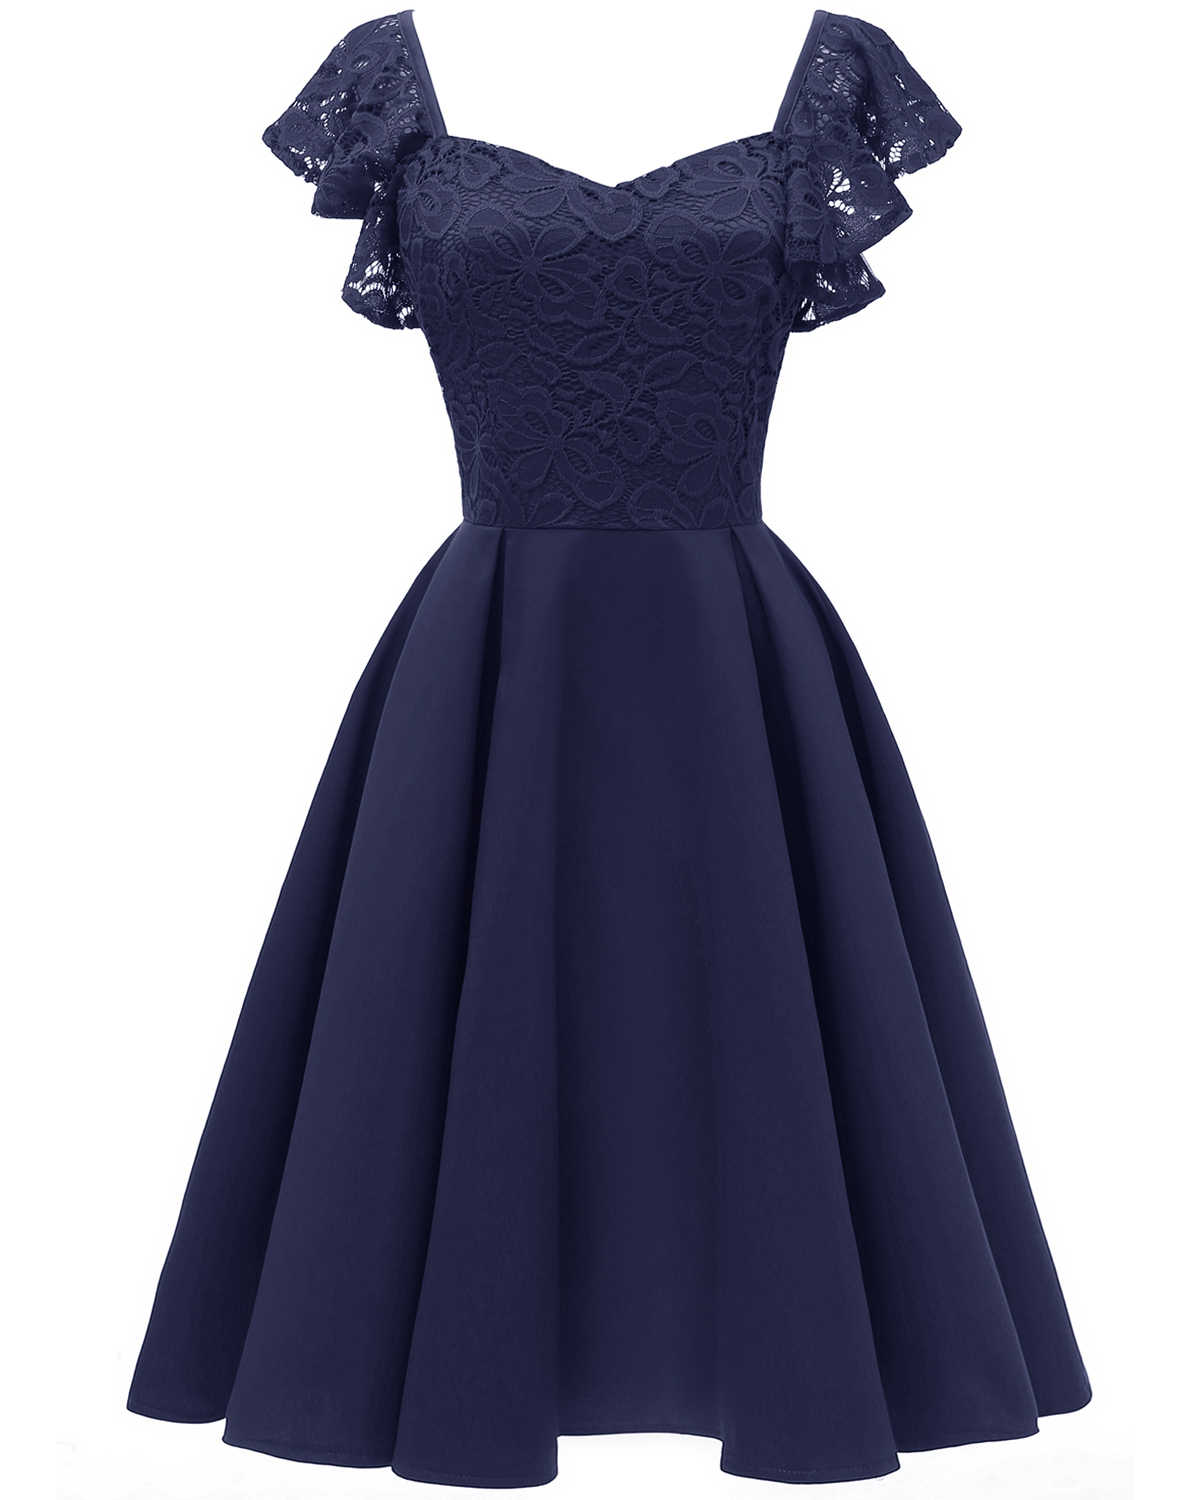 12 Autumn Summer Dress Women Sexy Hollow Out Lace Dress Elegant Casual  Short Sleeve Ball Gown Party Dresses Midi Vestidos